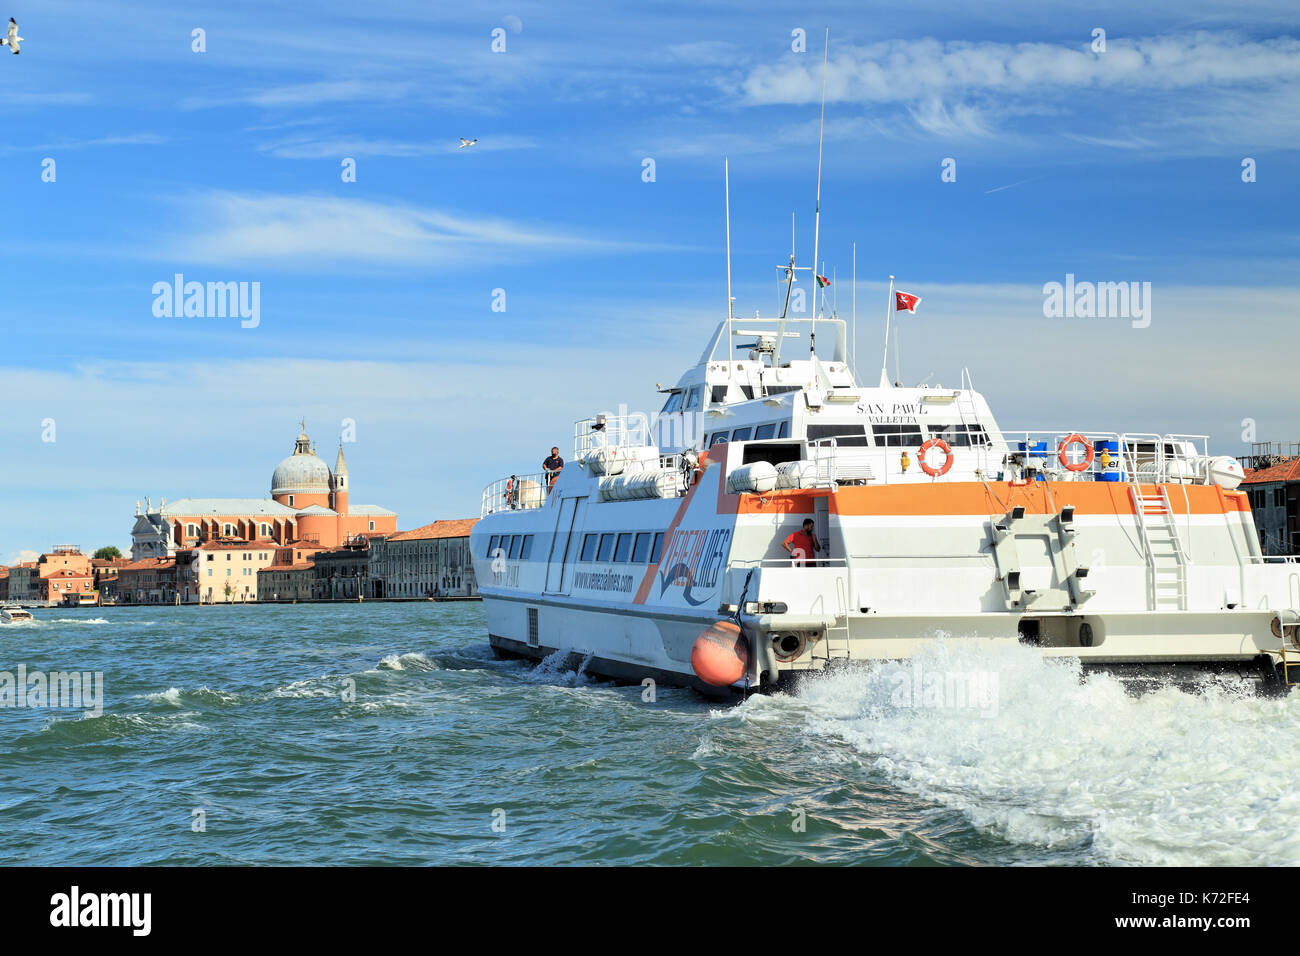 SAN PAWL, Venezia Lines, high speed hovercraft Air Cushion Vessel, IMO 8815932 - Stock Image